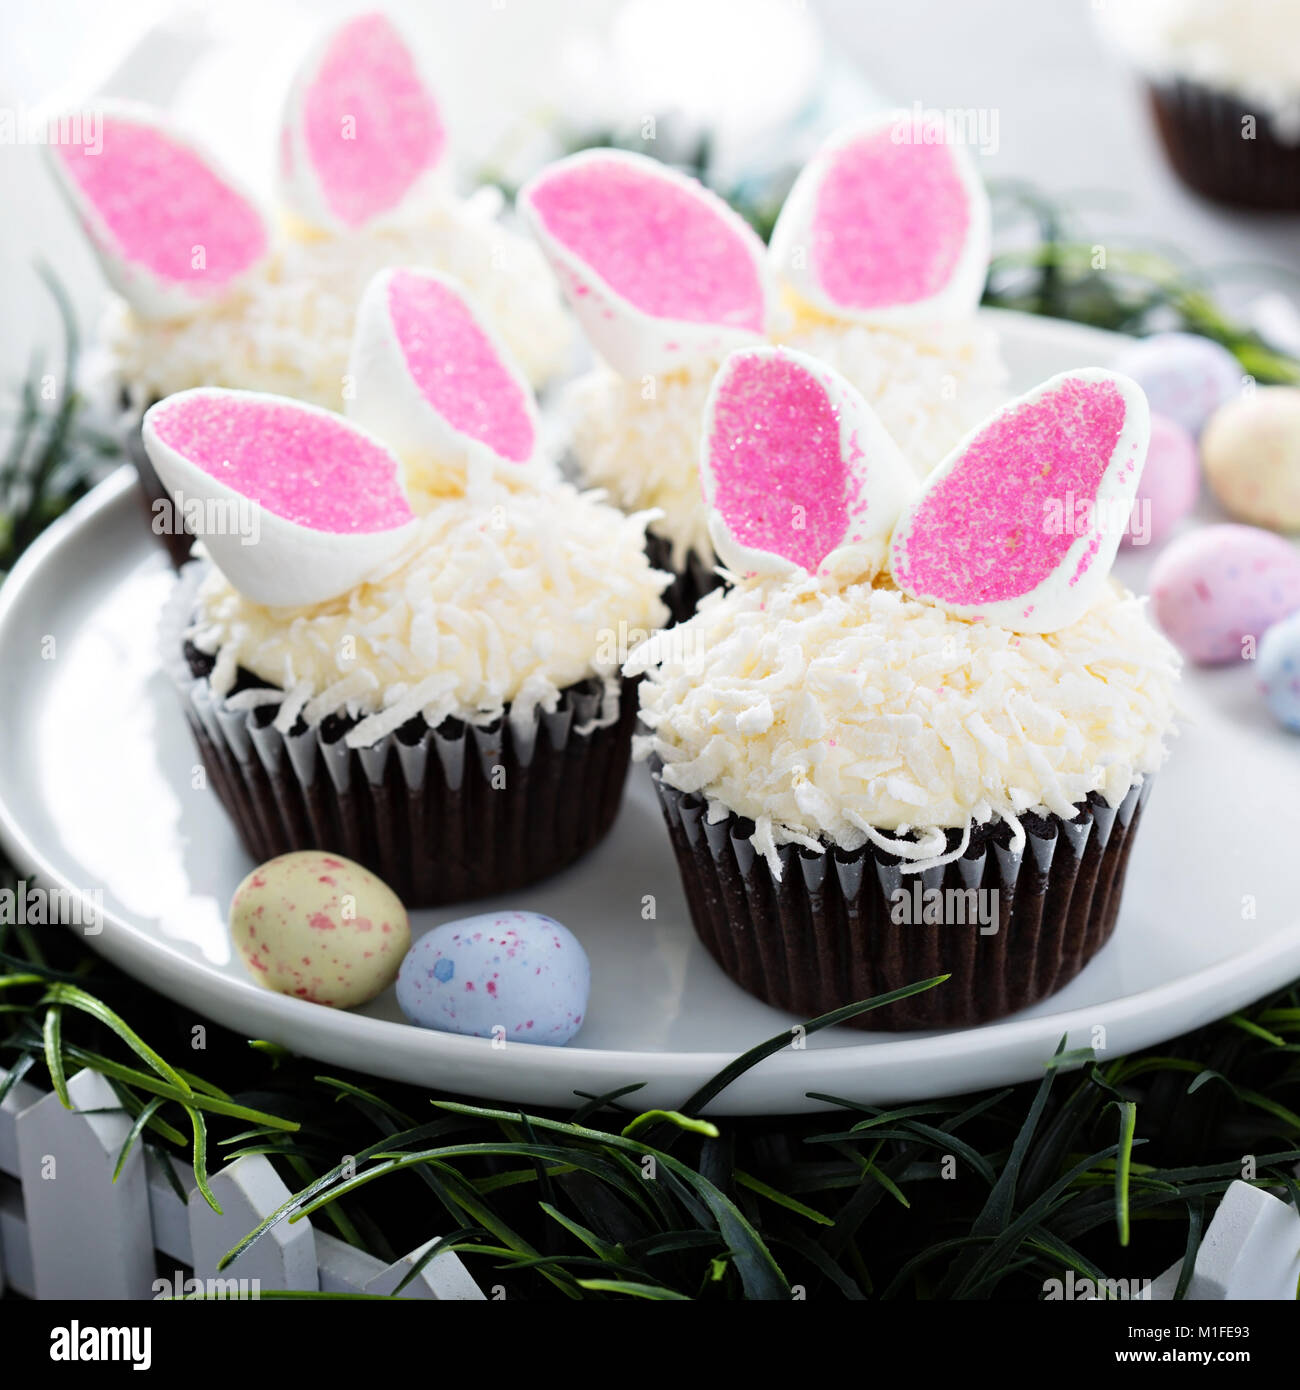 Easter chocolate cupcakes with bunny ears and coconut flakes - Stock Image